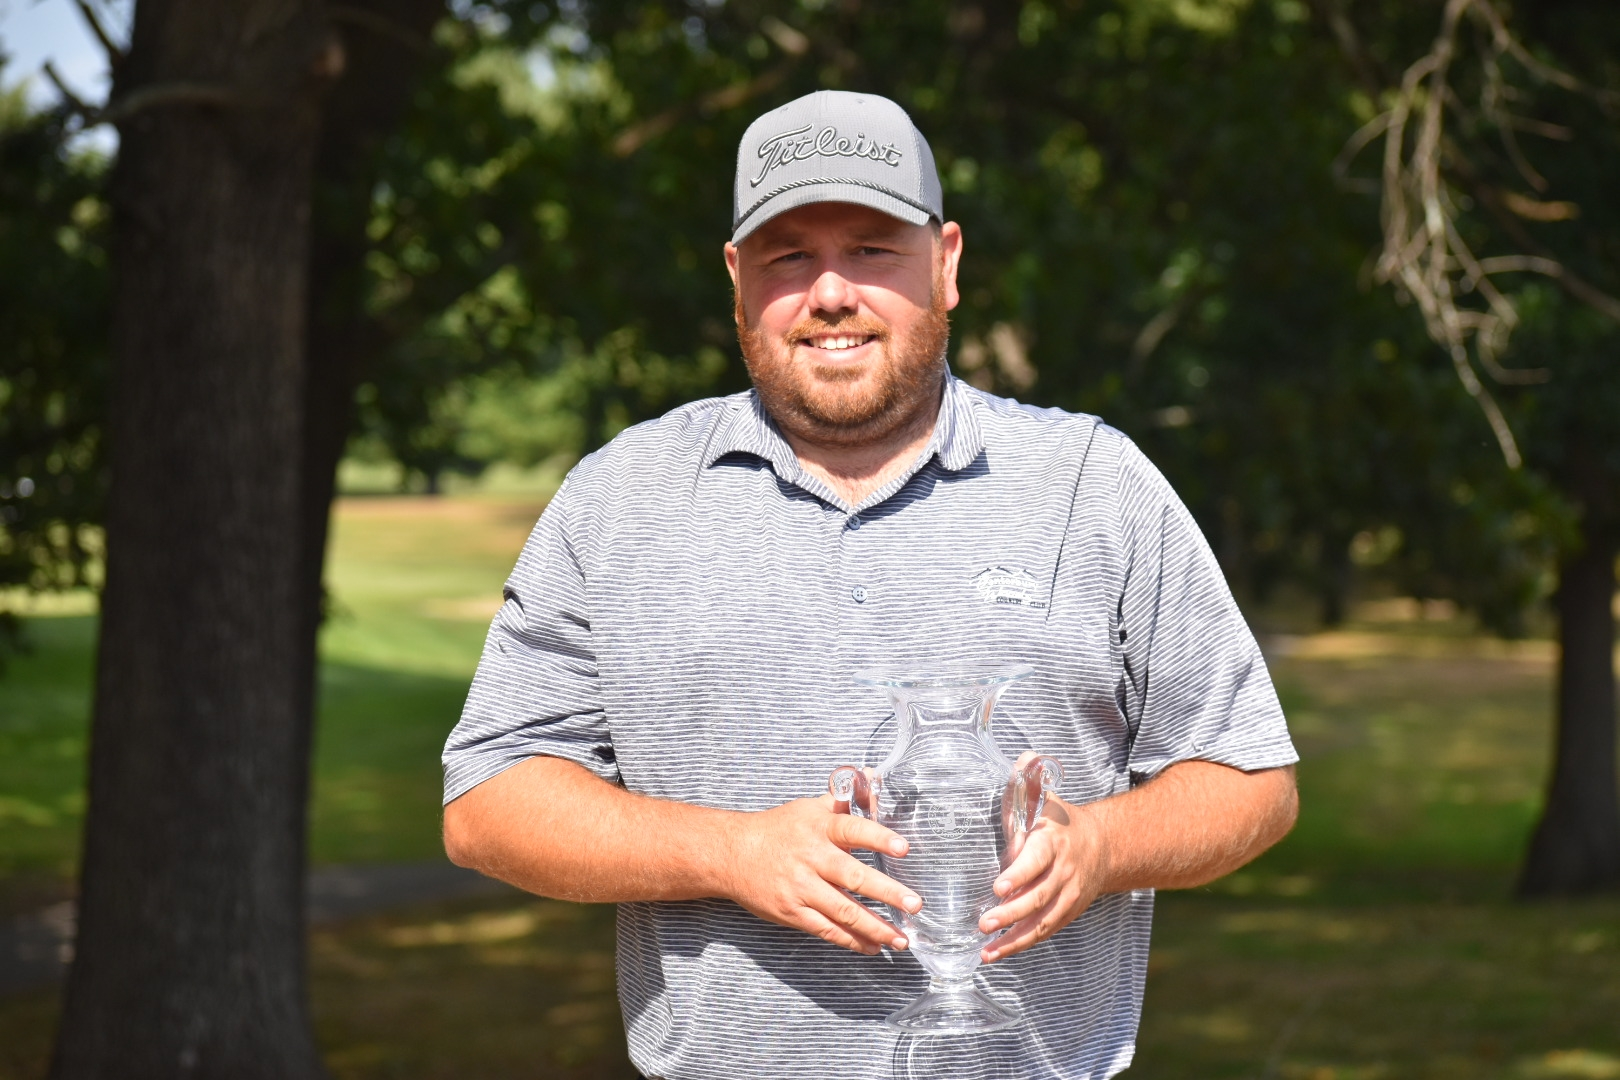 Steckowych & Pelletier Crowned 2020 Match Play Champions